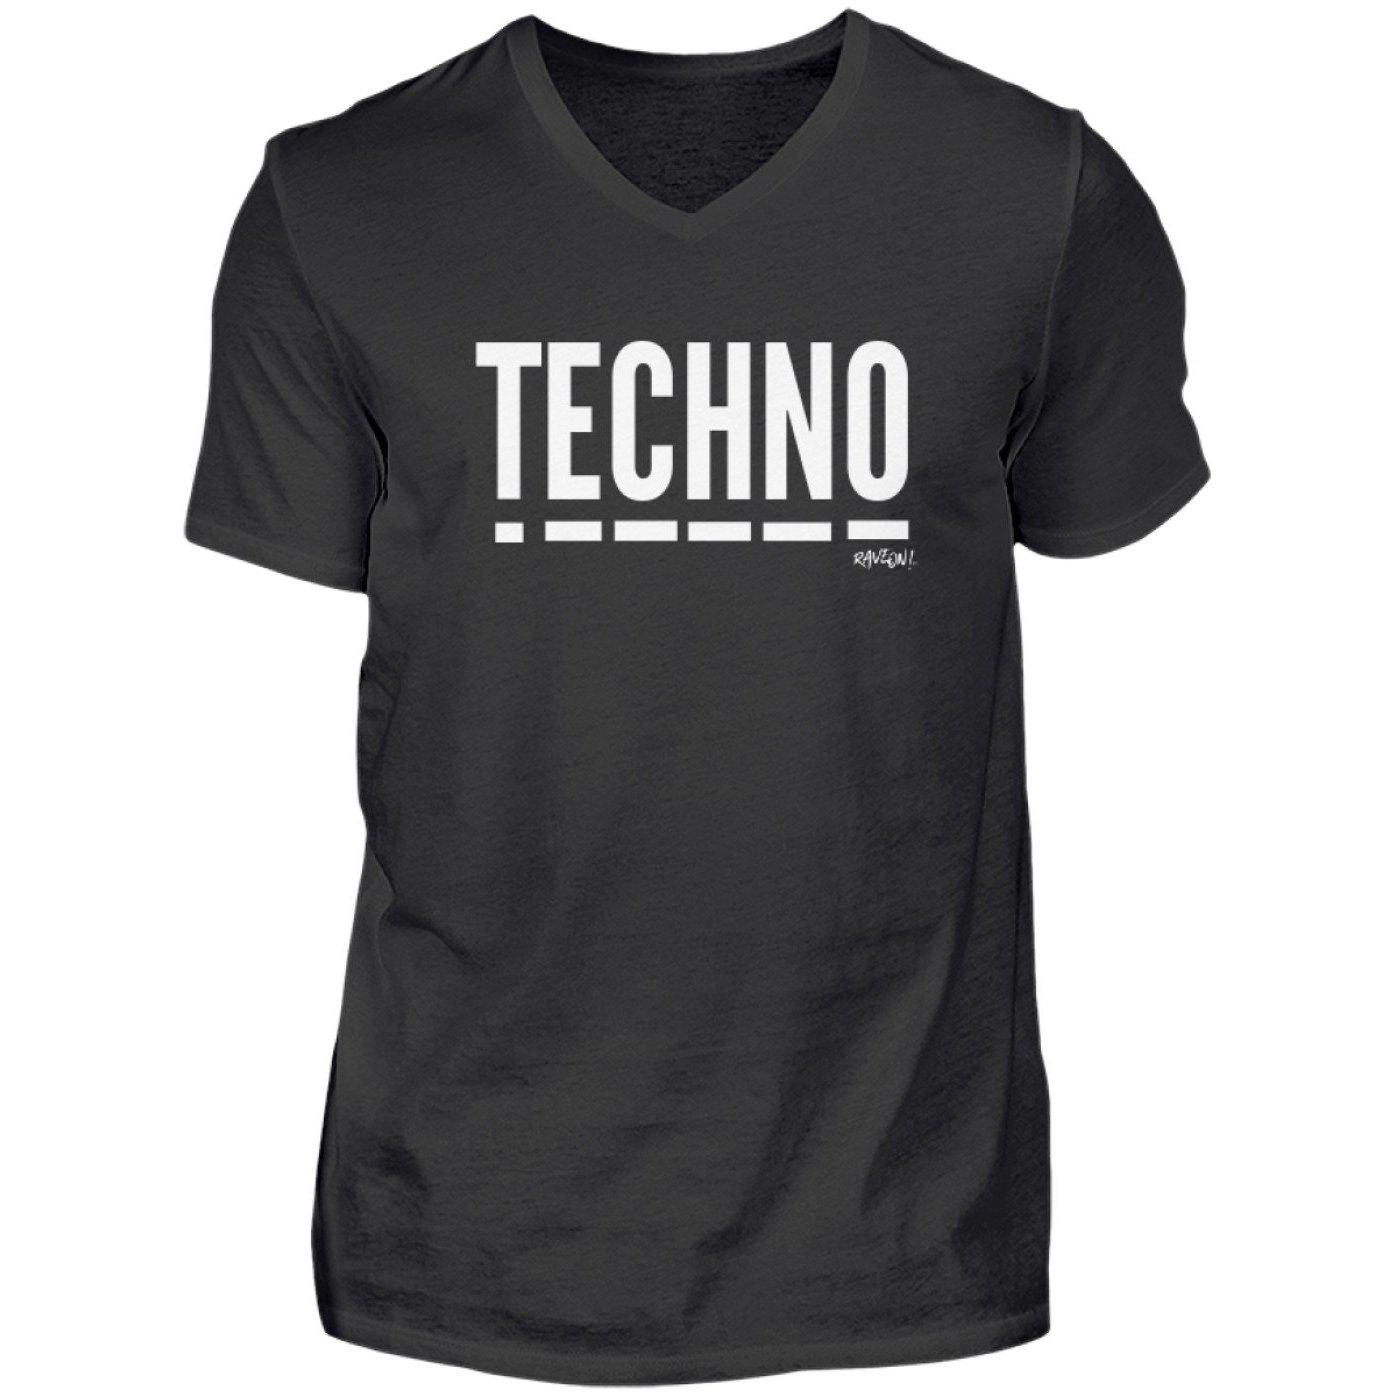 Techno Music - Rave On!® - Herren V-Neck Shirt V-Neck Herrenshirt Black / S - Rave On!® der Club & Techno Szene Shop für Coole Junge Mode Streetwear Style & Fashion Outfits + Sexy Festival 420 Stuff